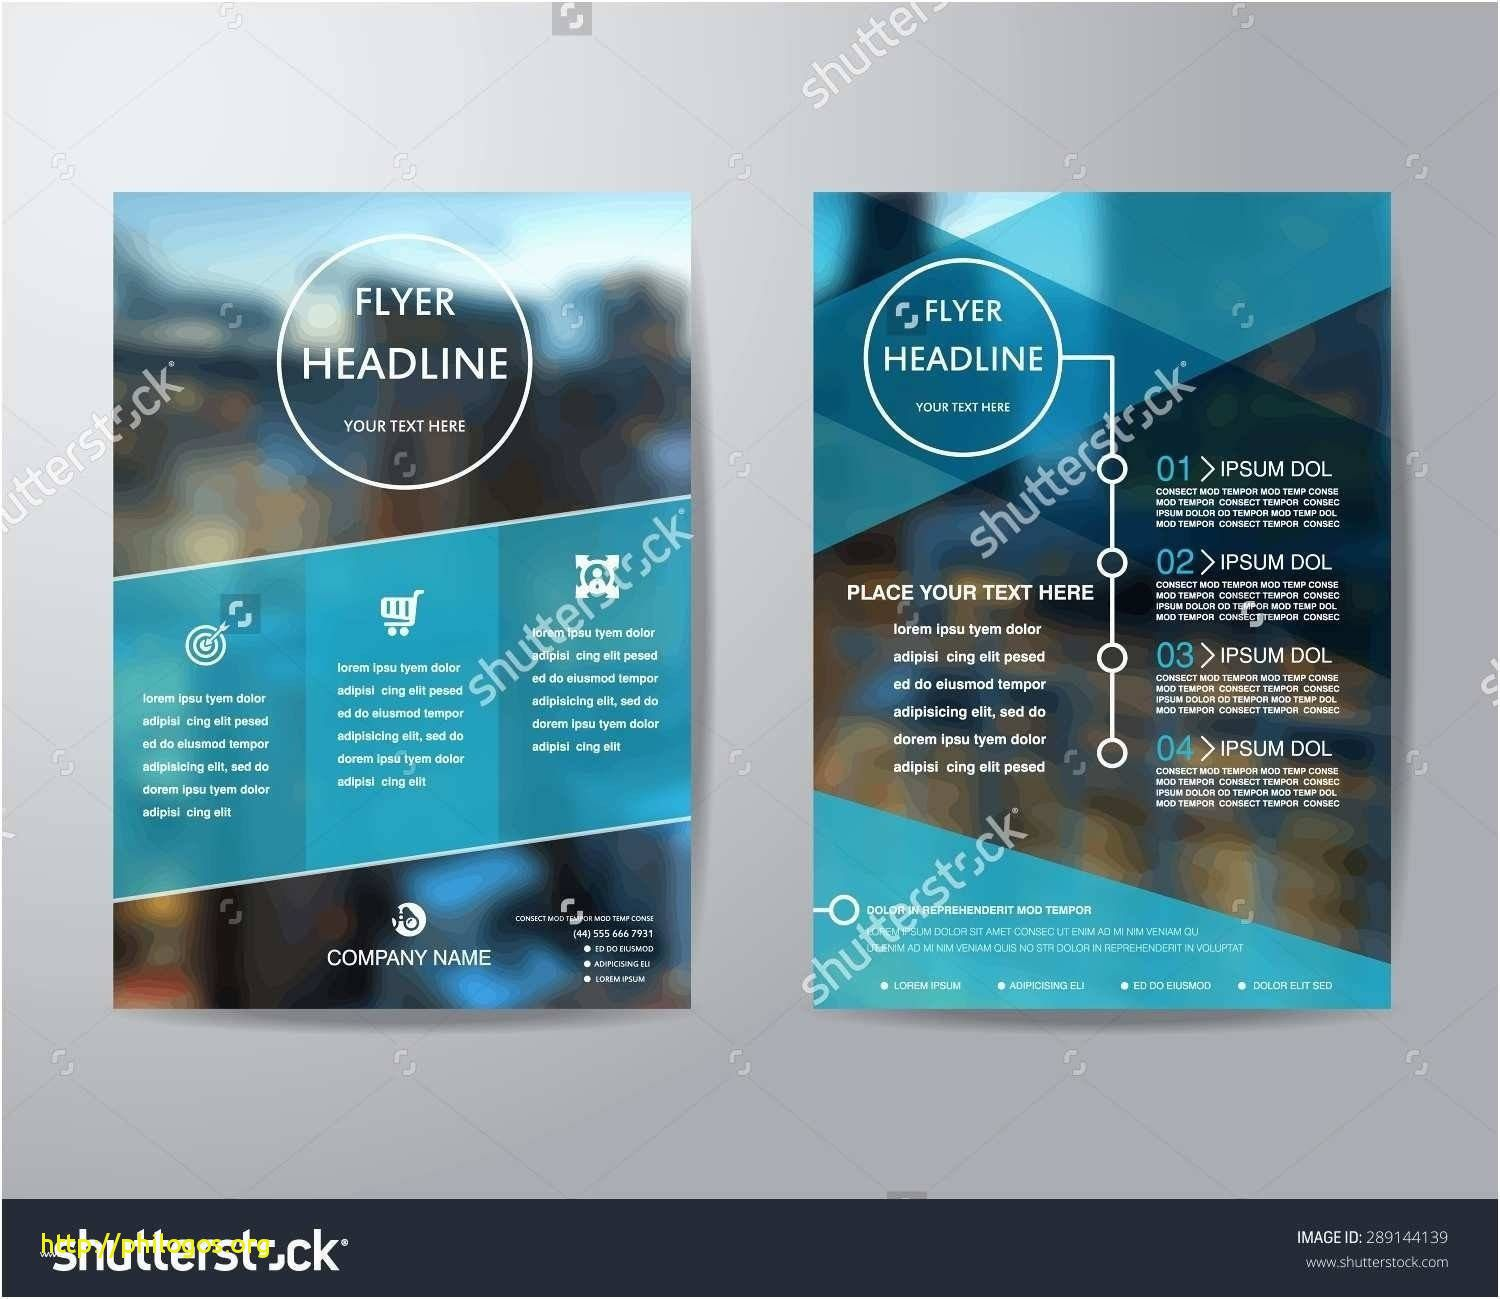 Free Blank Business Card Templates For Word Free Brochure Template Free Business Card Templates Business Card Template Psd